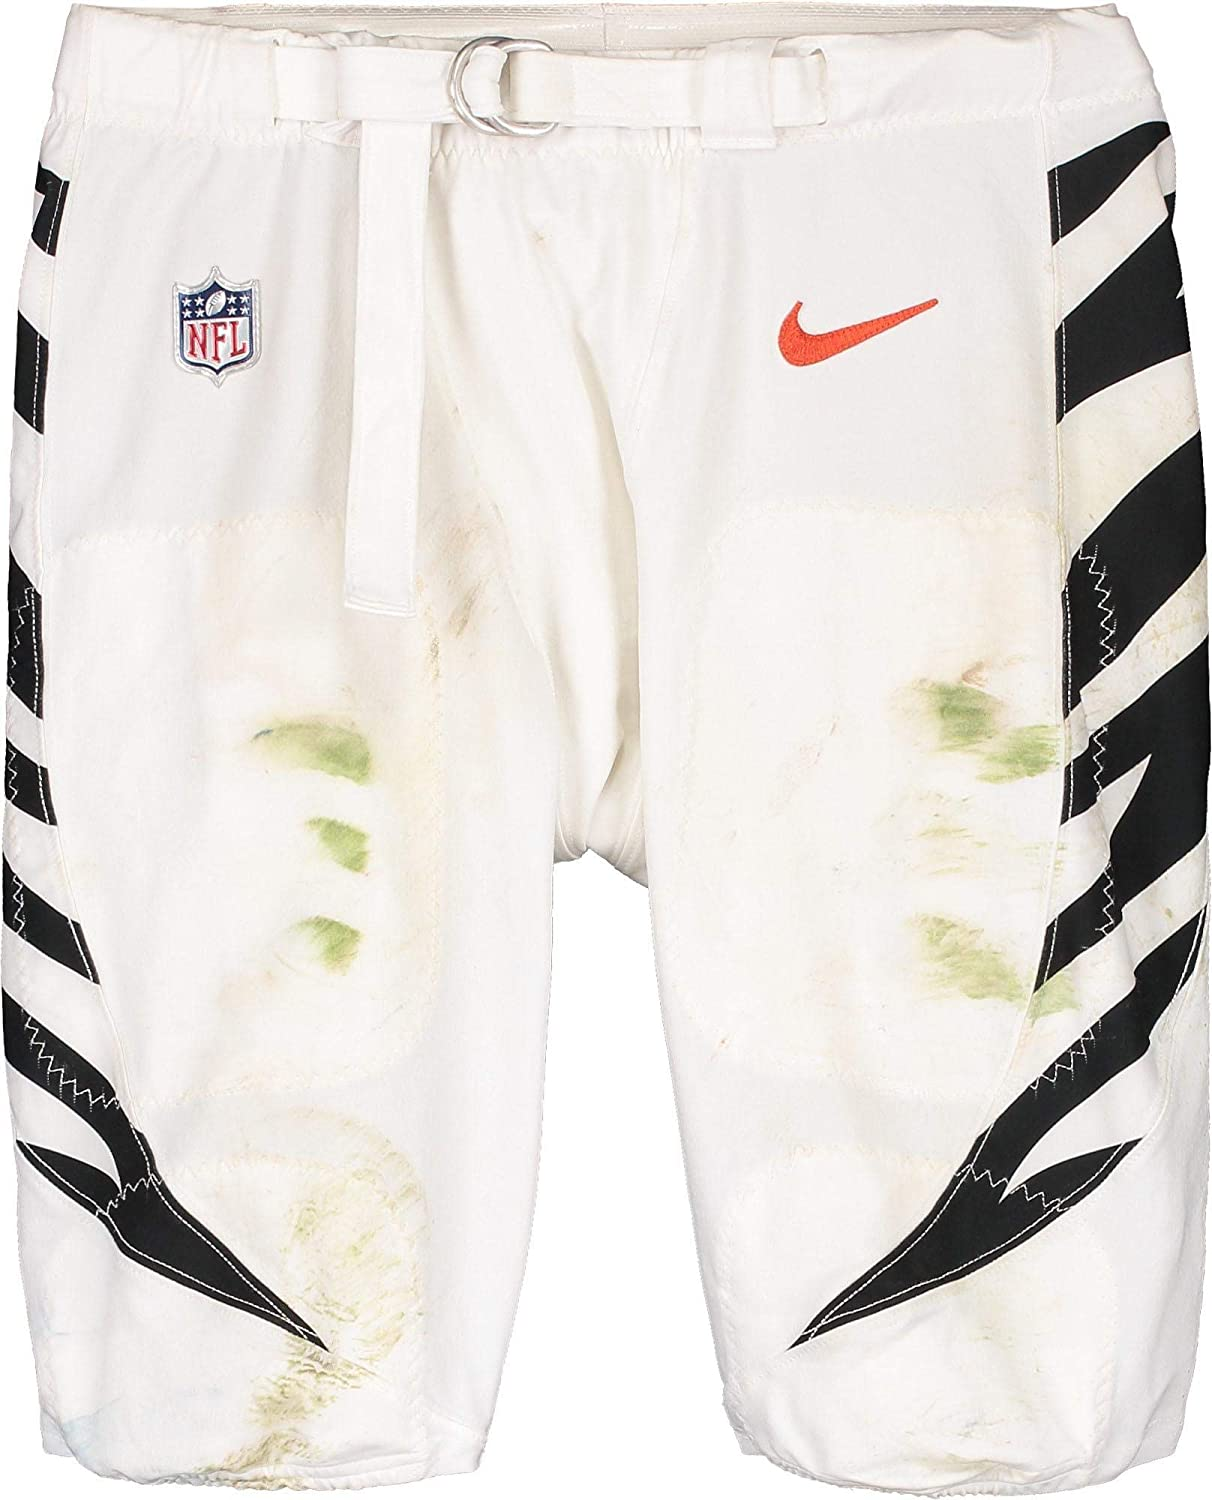 Bobby Hart Cincinnati Bengals Game-Used #68 White Pants vs. Los Angeles Rams on October 27, 2019 - Fanatics Authentic Certified